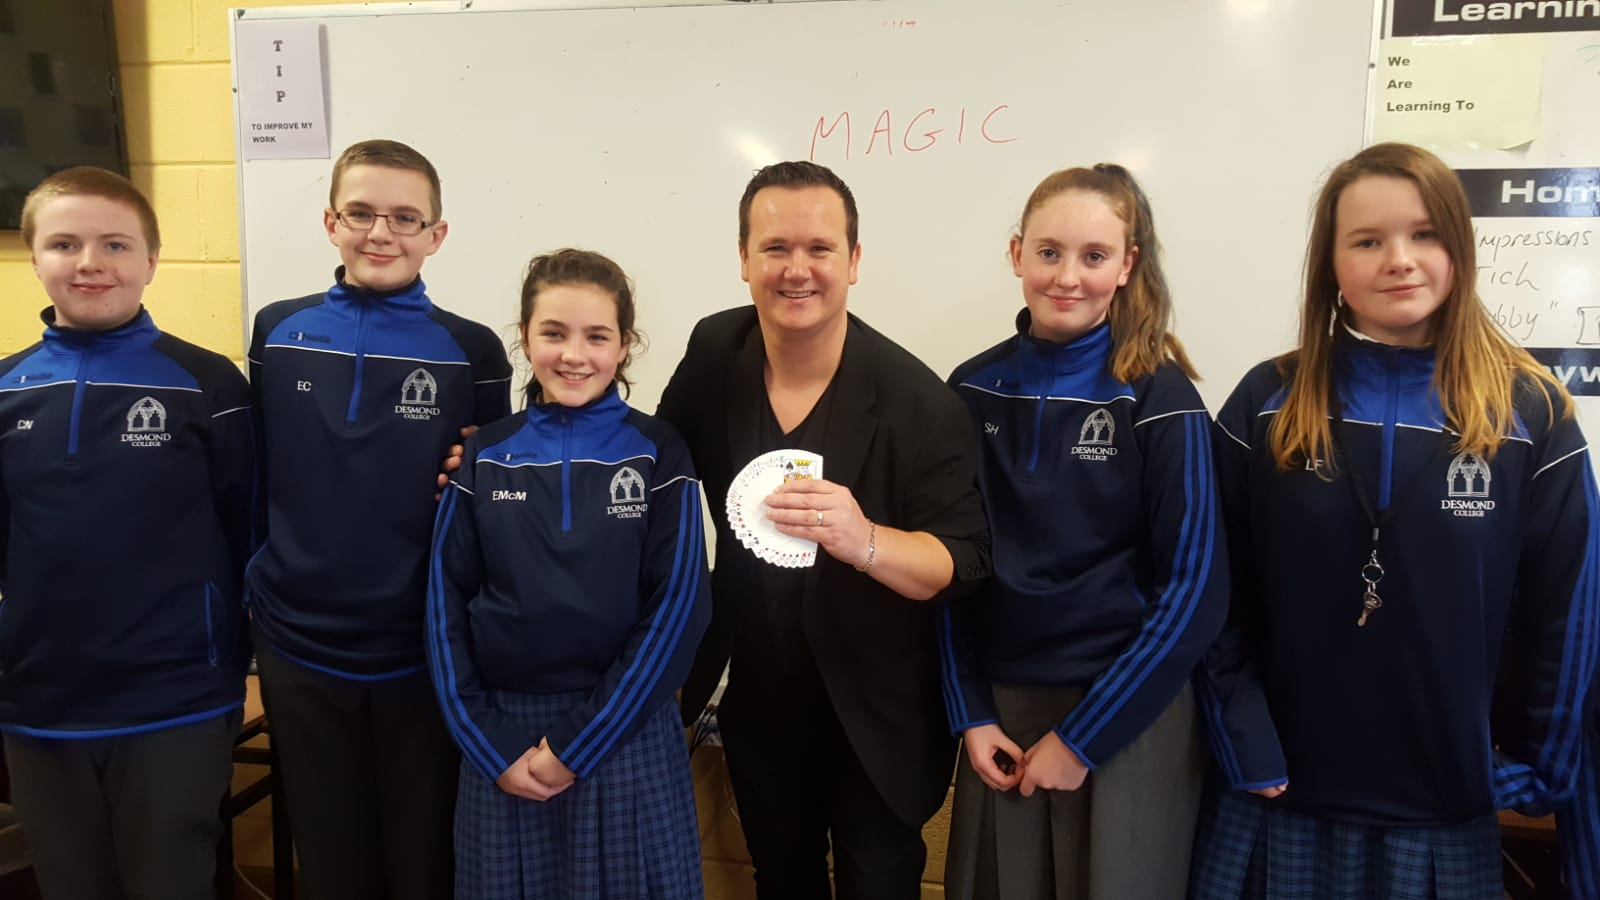 Cathal Nolan, Eamon Conlon, Edel McMahon, Sarah Hallett  and Leah Mai Fitzpatrick enjoying the magic show from Magician Leon as  part of Numeracy Week.